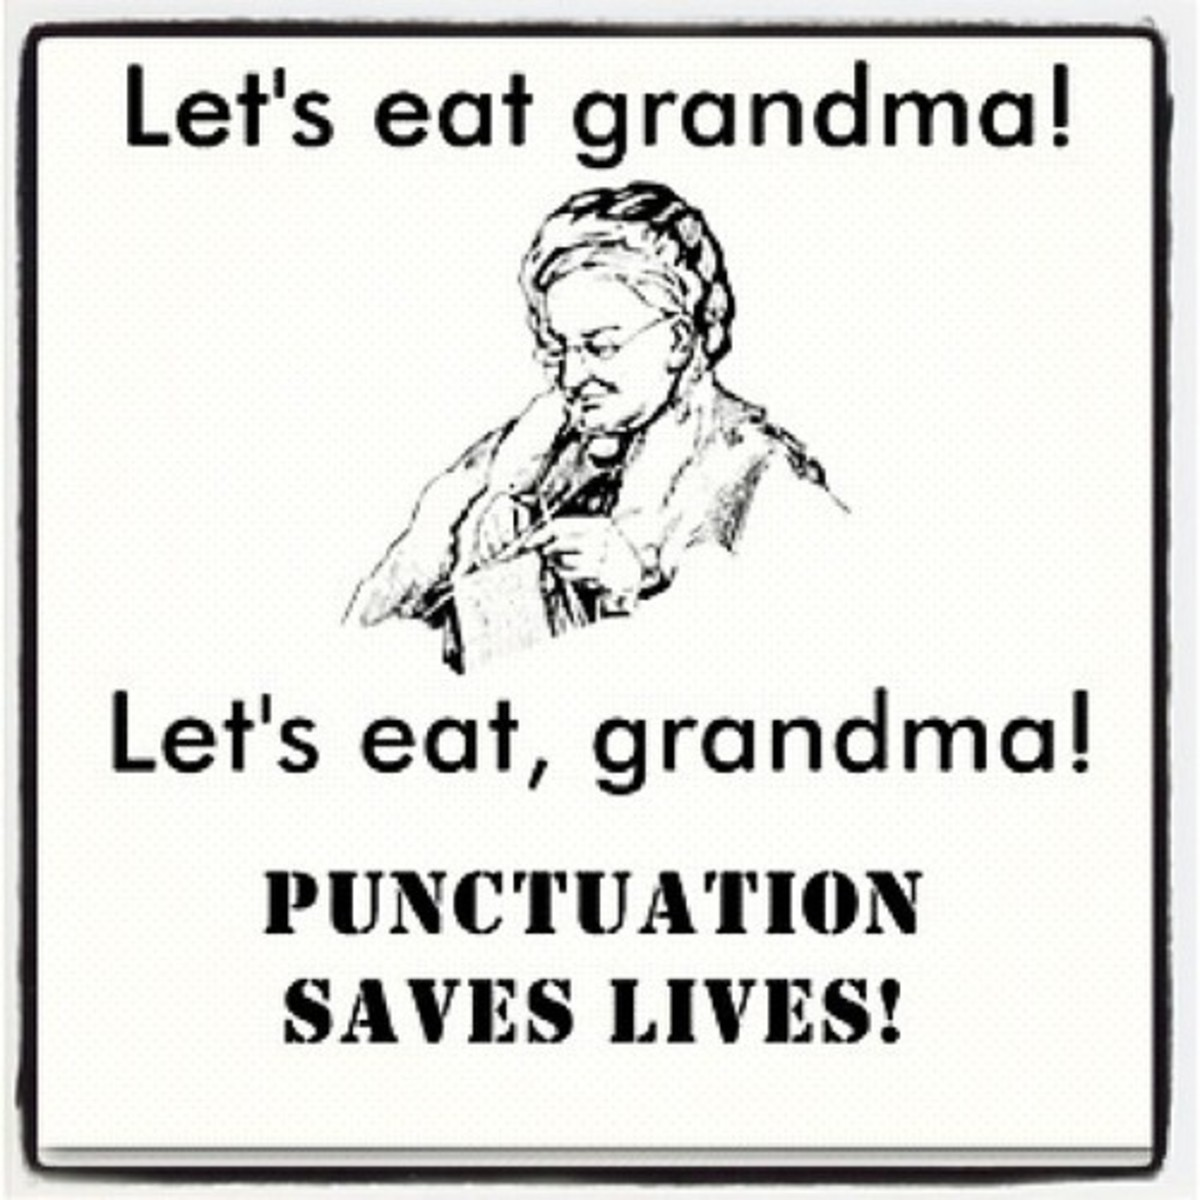 A comma (or lack thereof) can change the meaning of a sentence dramatically.